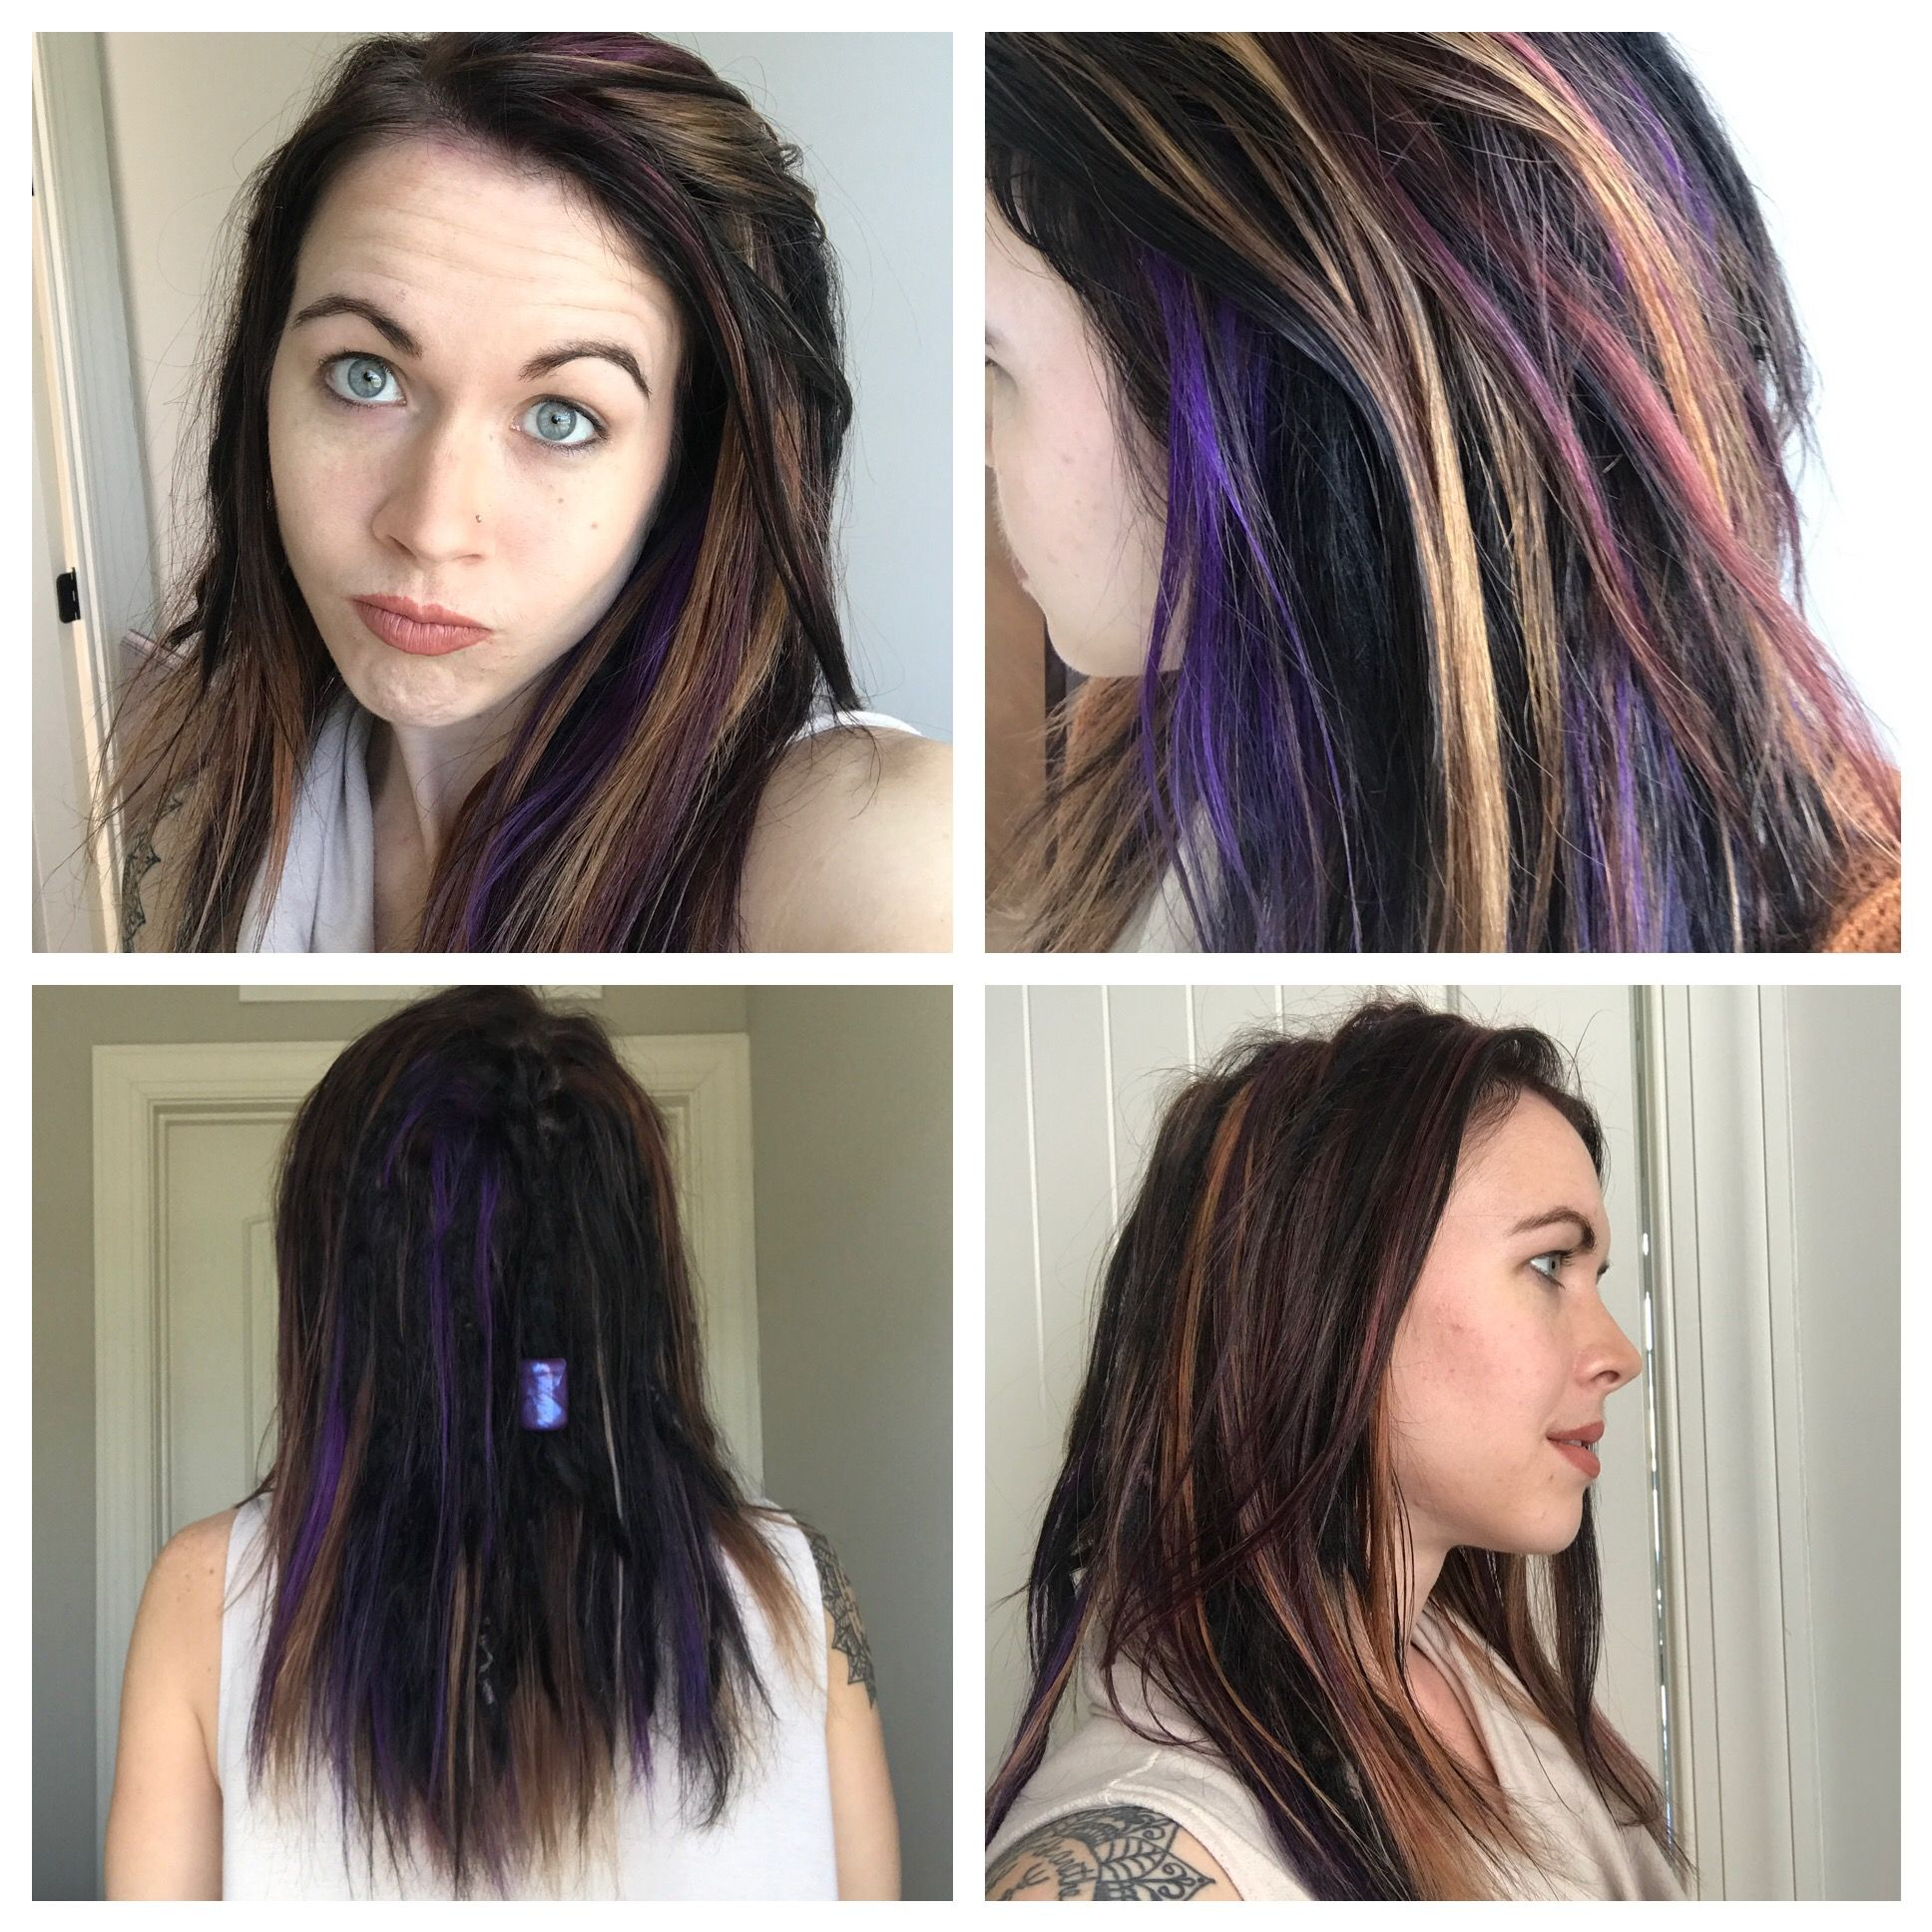 Fun Hair Dye With Partially Dreaded Hair Colors Black Base With